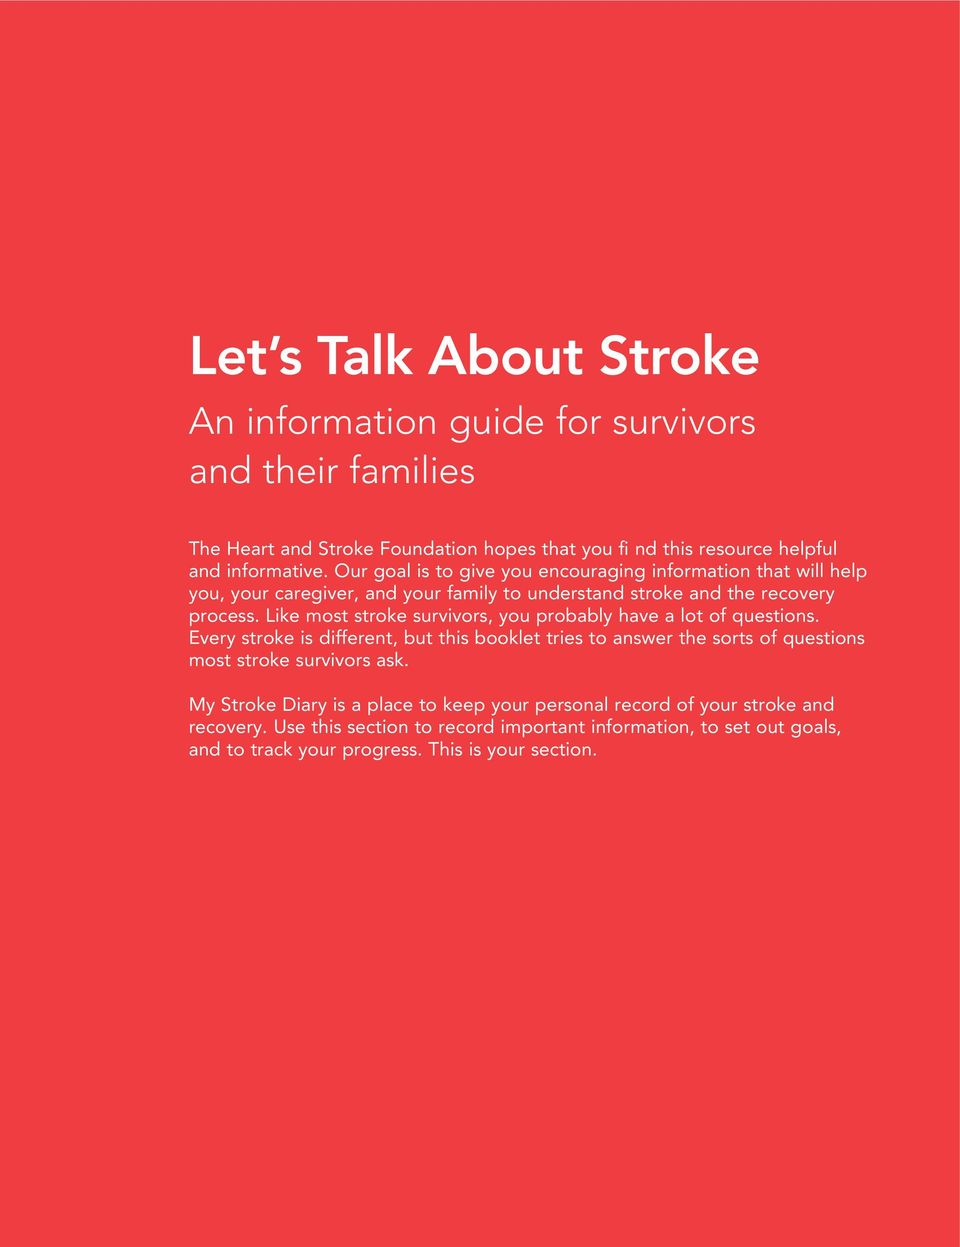 Like most stroke survivors, you probably have a lot of questions.